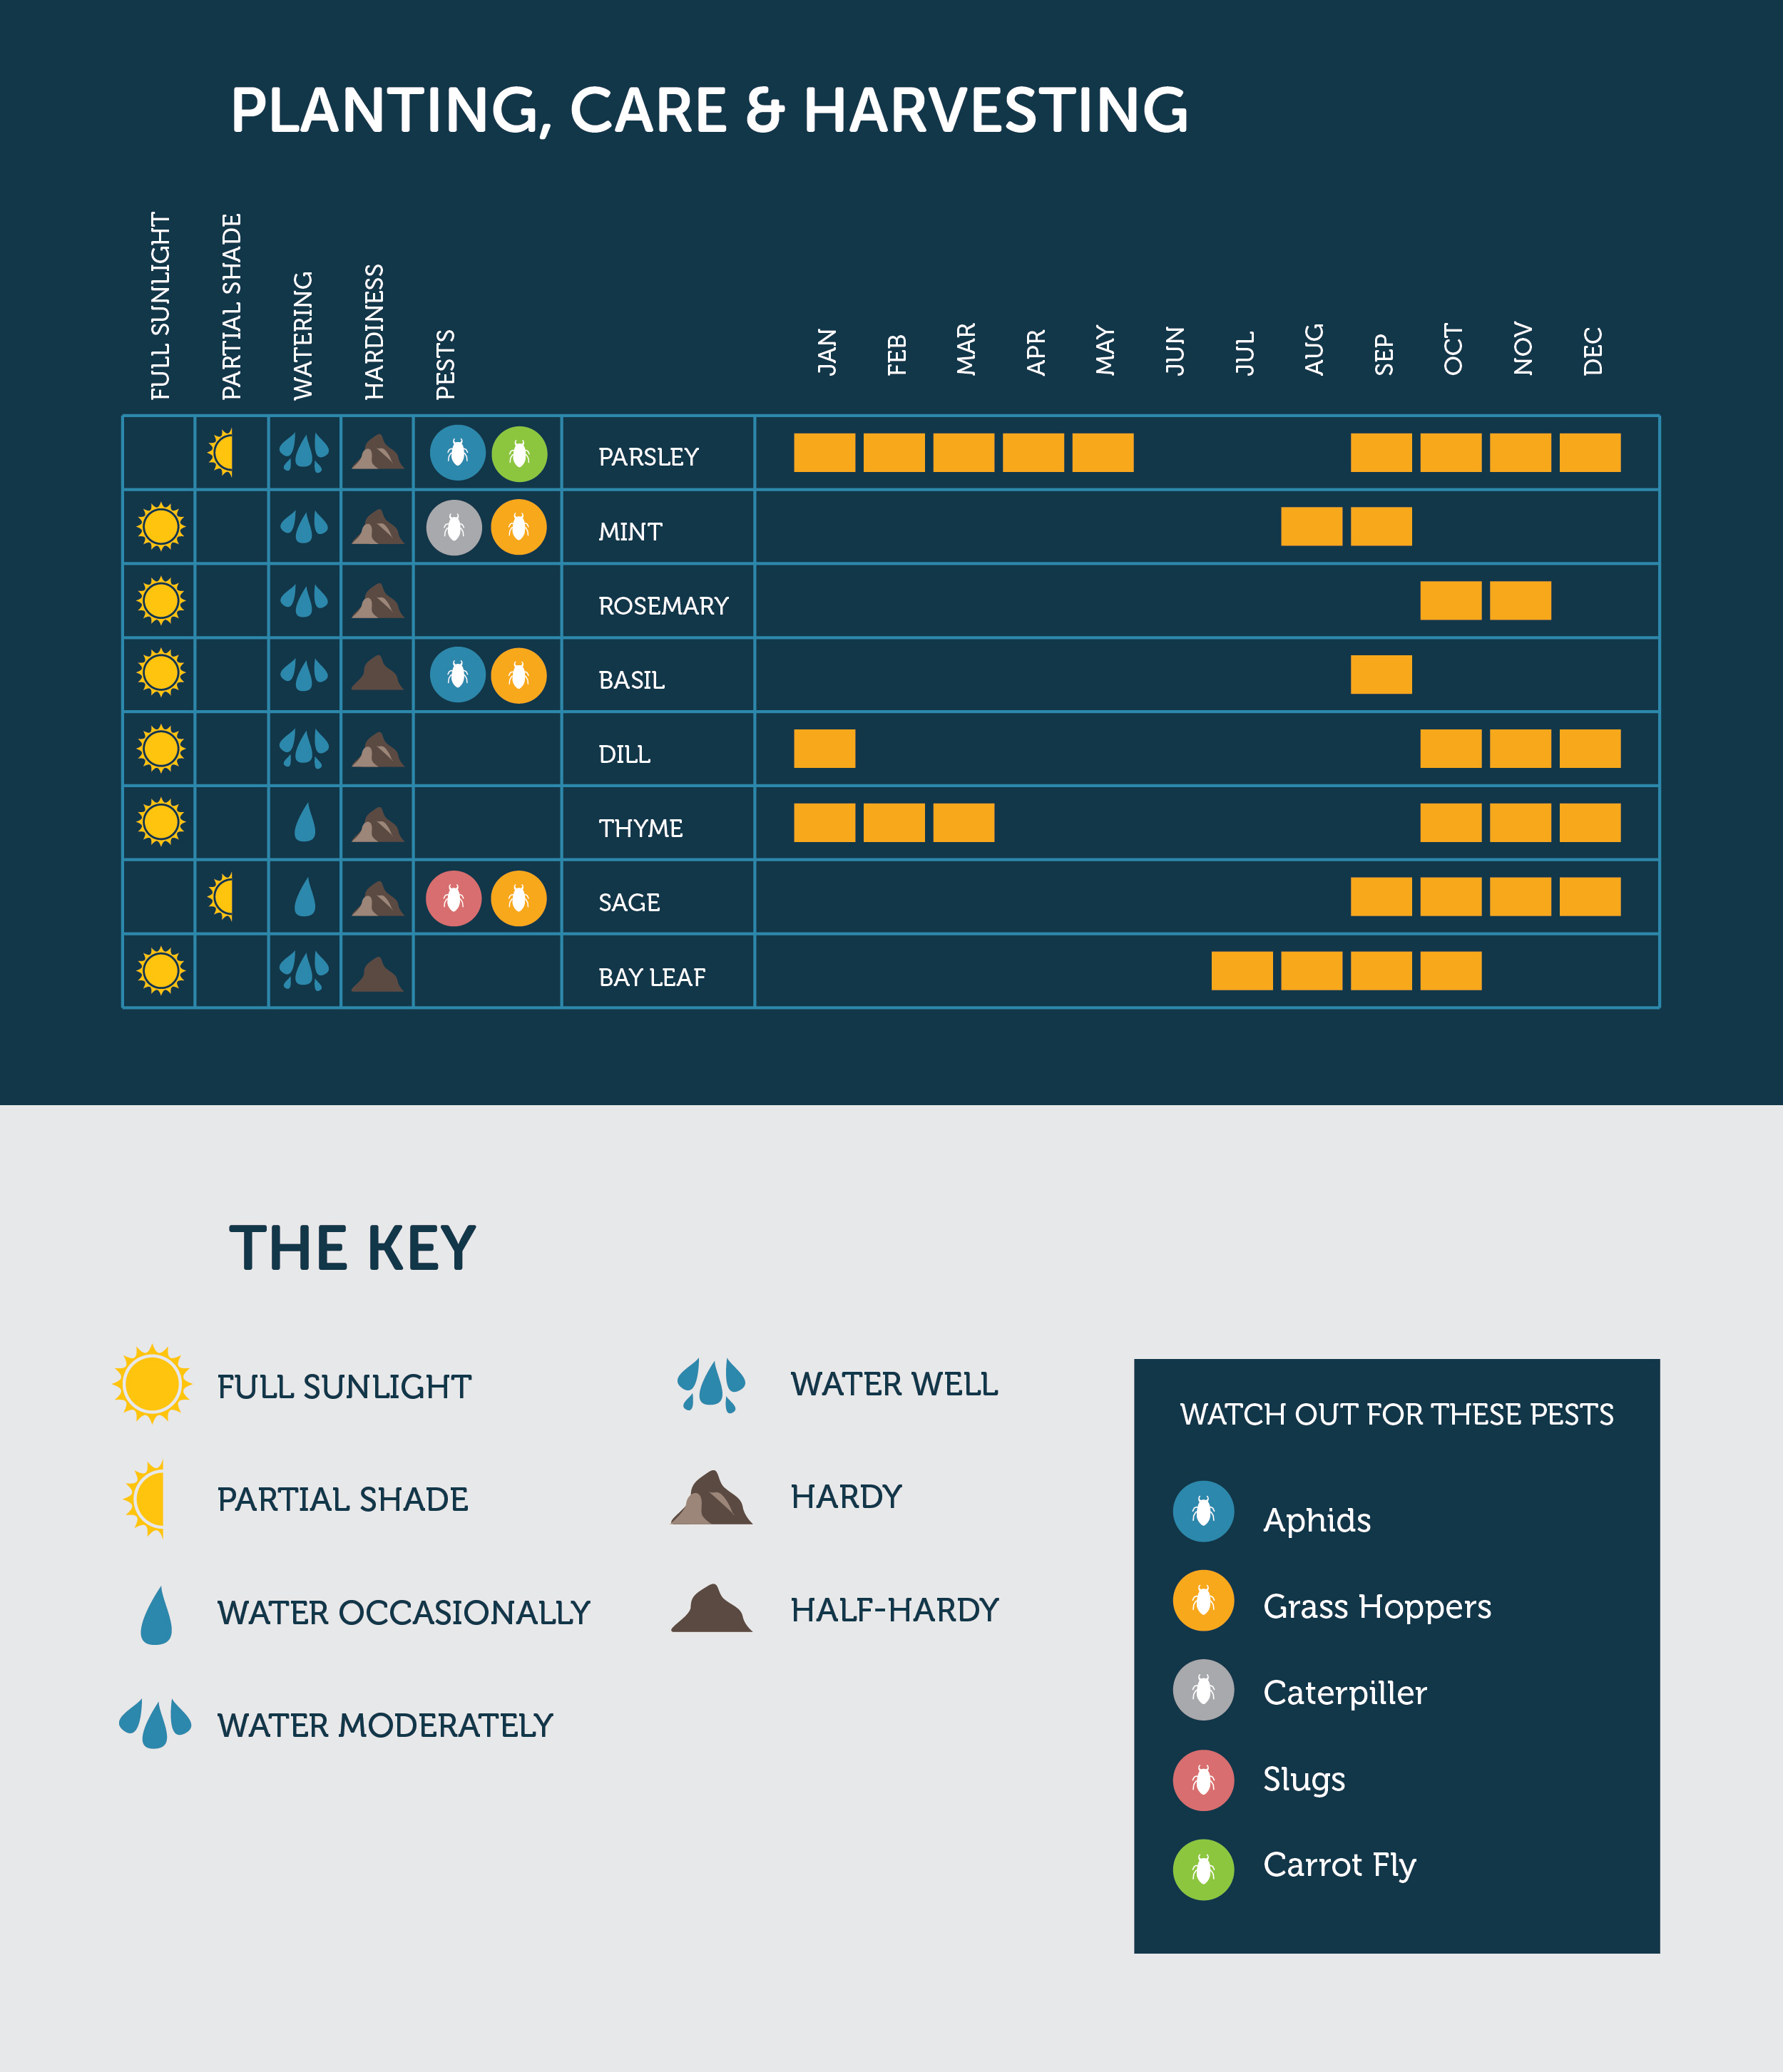 Email Growers Cheat Sheet Middle-01.jpg